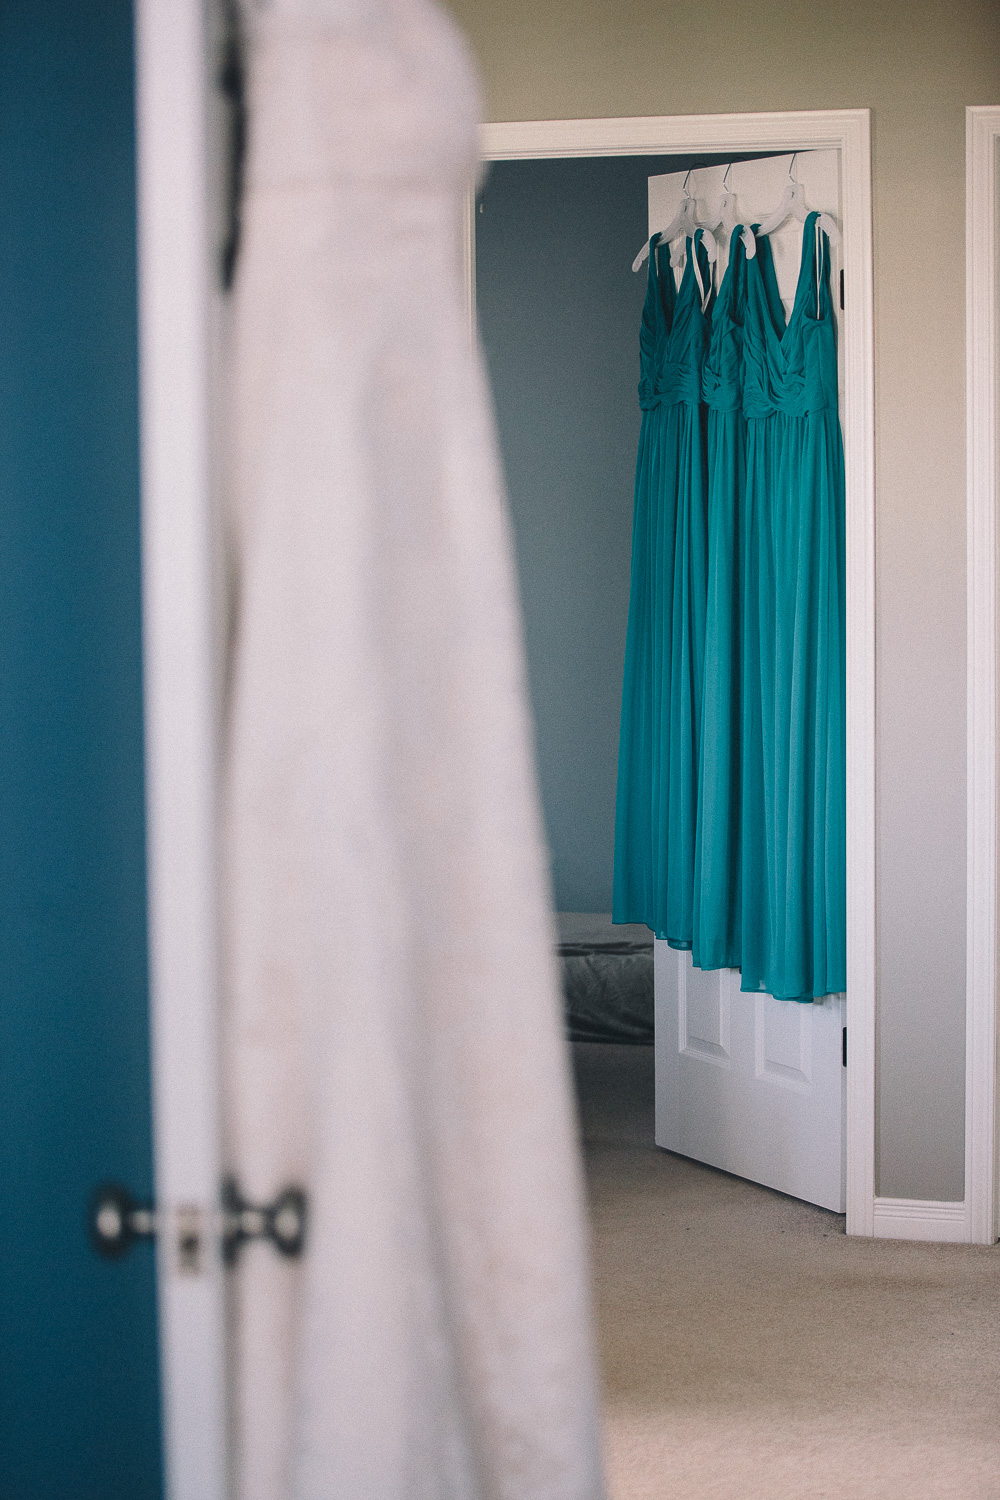 Teal bridesmaid dresses hanging on door with wedding dress in the foreground.